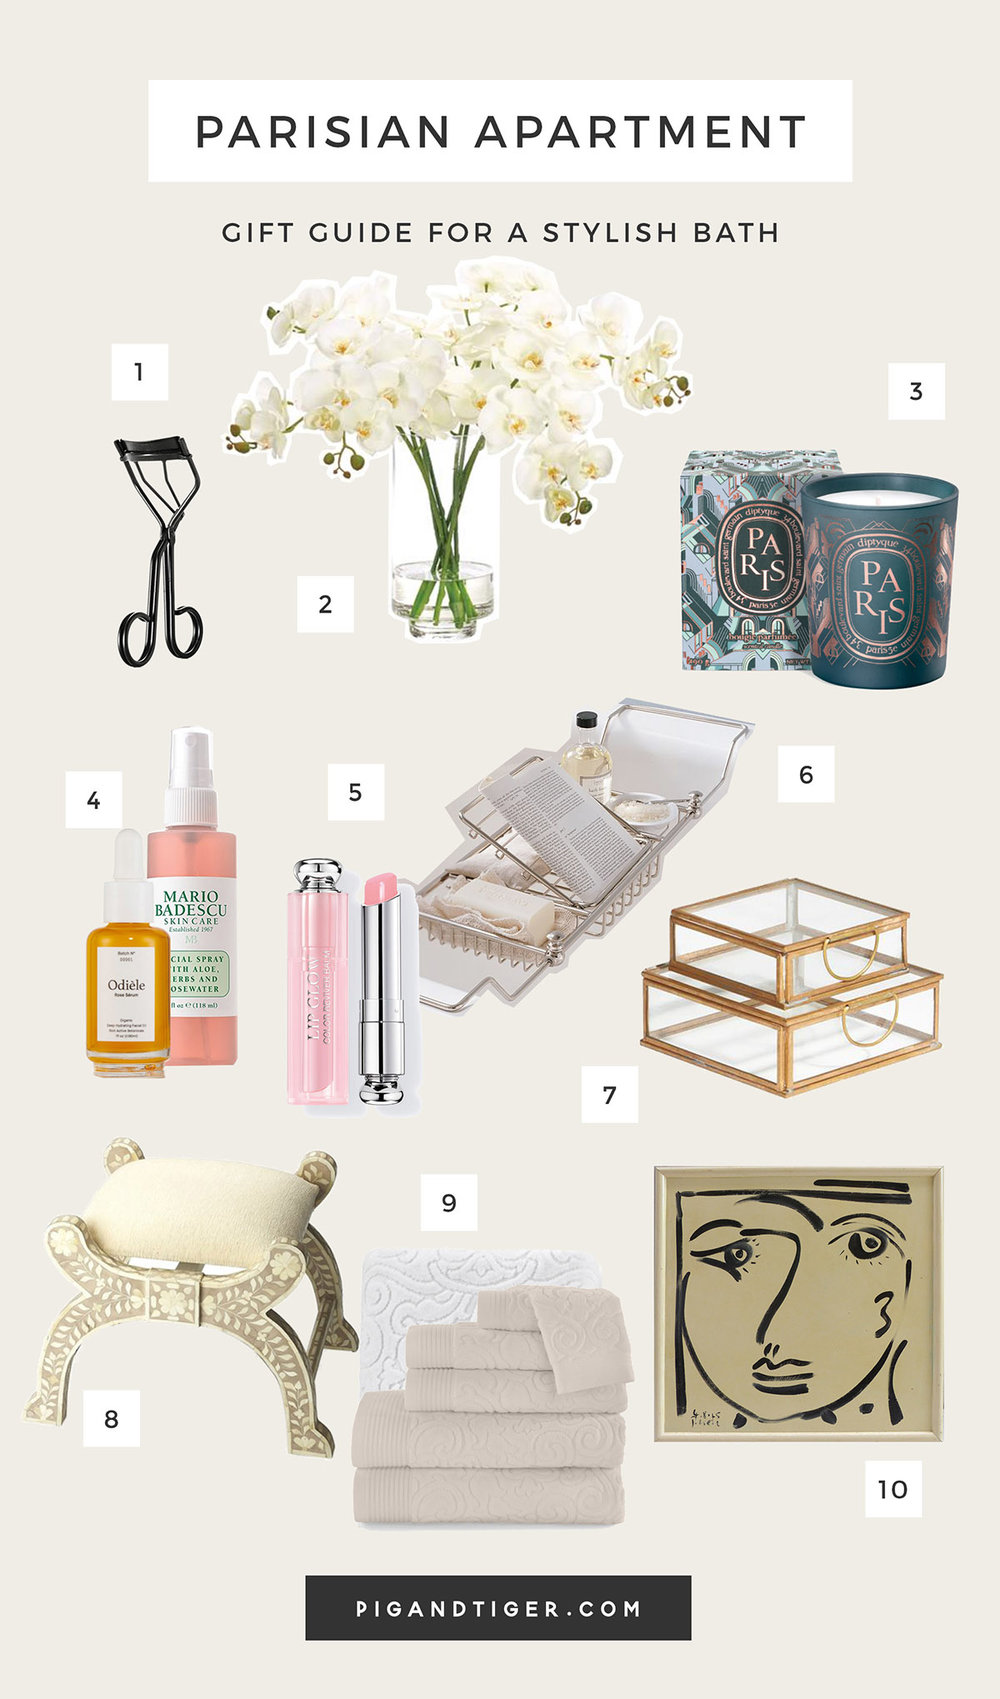 Parisian style bathroom decor gift guide - CLICK FOR DETAILS